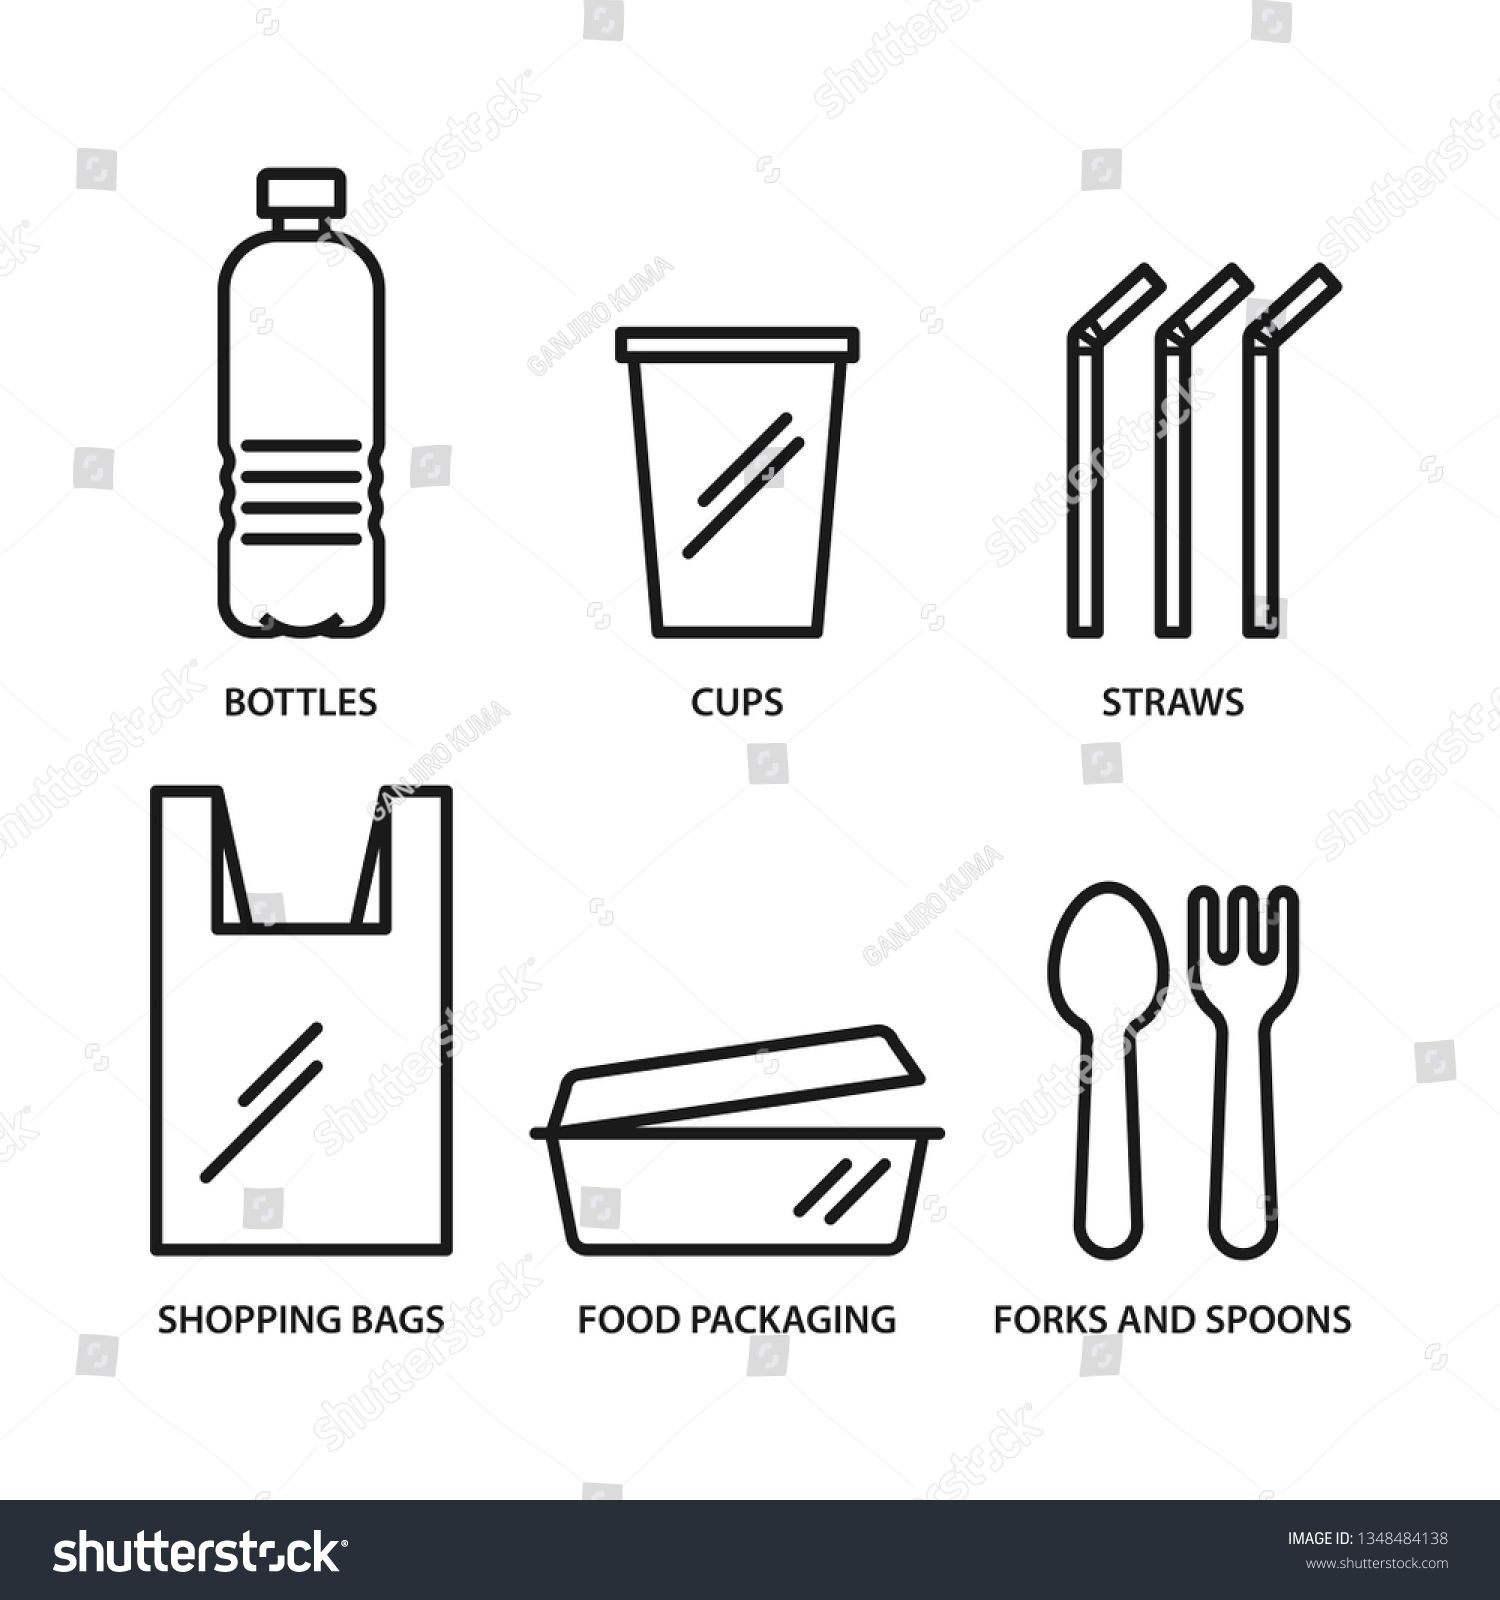 Single Use Plastic Icons Set Bottle Cup Straws Bag Food Package Fork And Spoon Stroke Outline Style Vector Is Icon Set Forks And Spoons Food Packaging